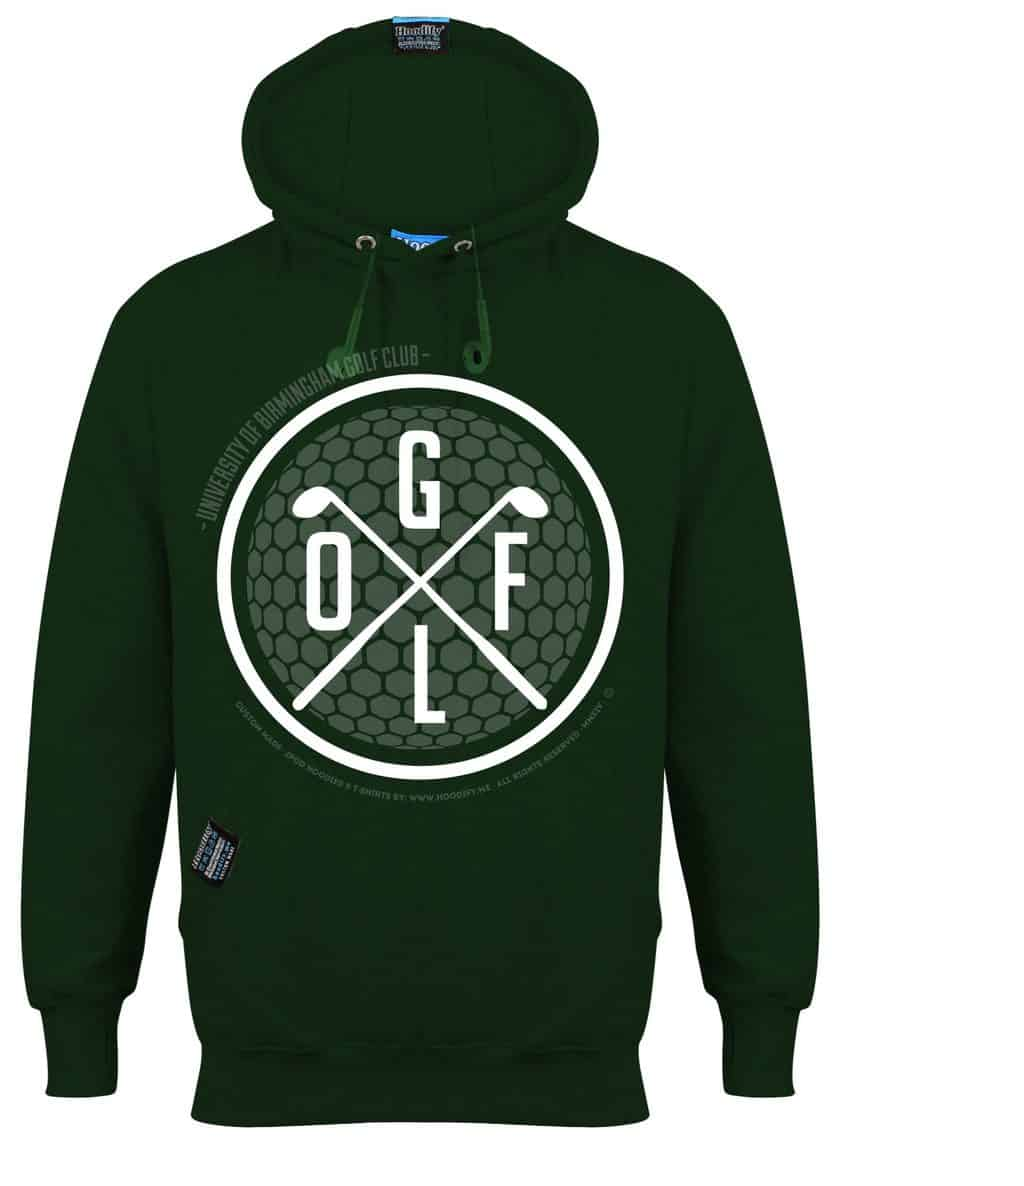 BIRMINGHAM GOLF - EARBUD HOOD - DARK FOREST GREEN - HOODIFY.ME - CUSTOM HOODIES SCREEN PRINTED DESIGNS FEATURING - HIDDEN EARBUD IPHONE MP3 POCKET - JPG